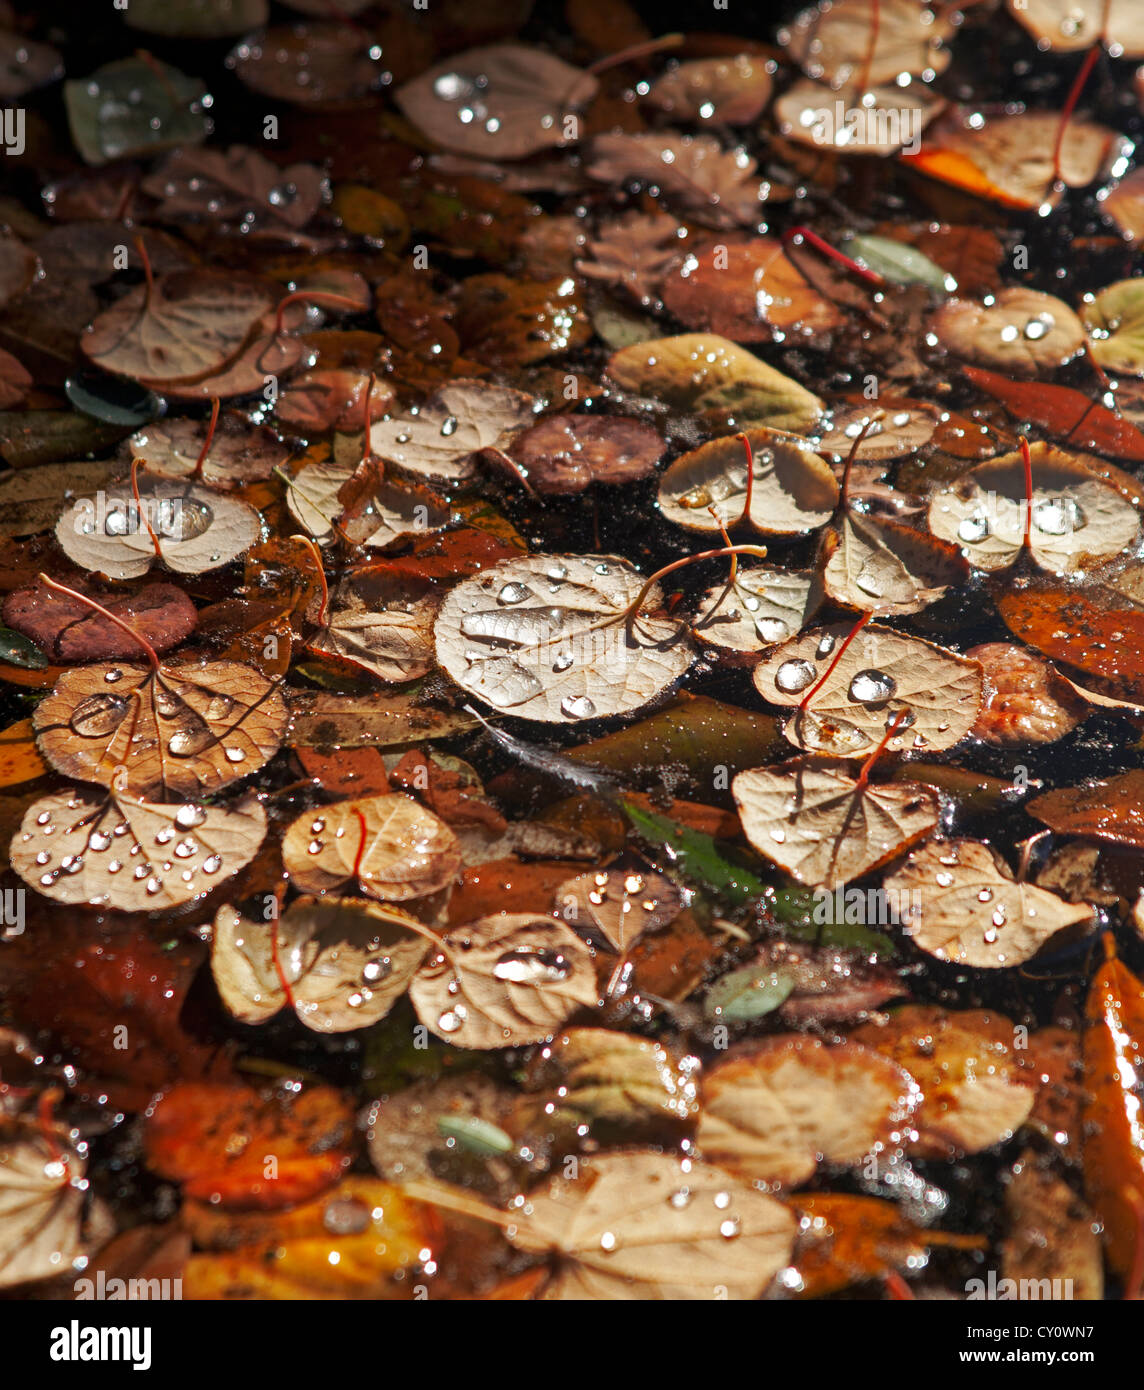 England, Cheshire, Dunham Massey, autumn leaves floating in a pond - Stock Image